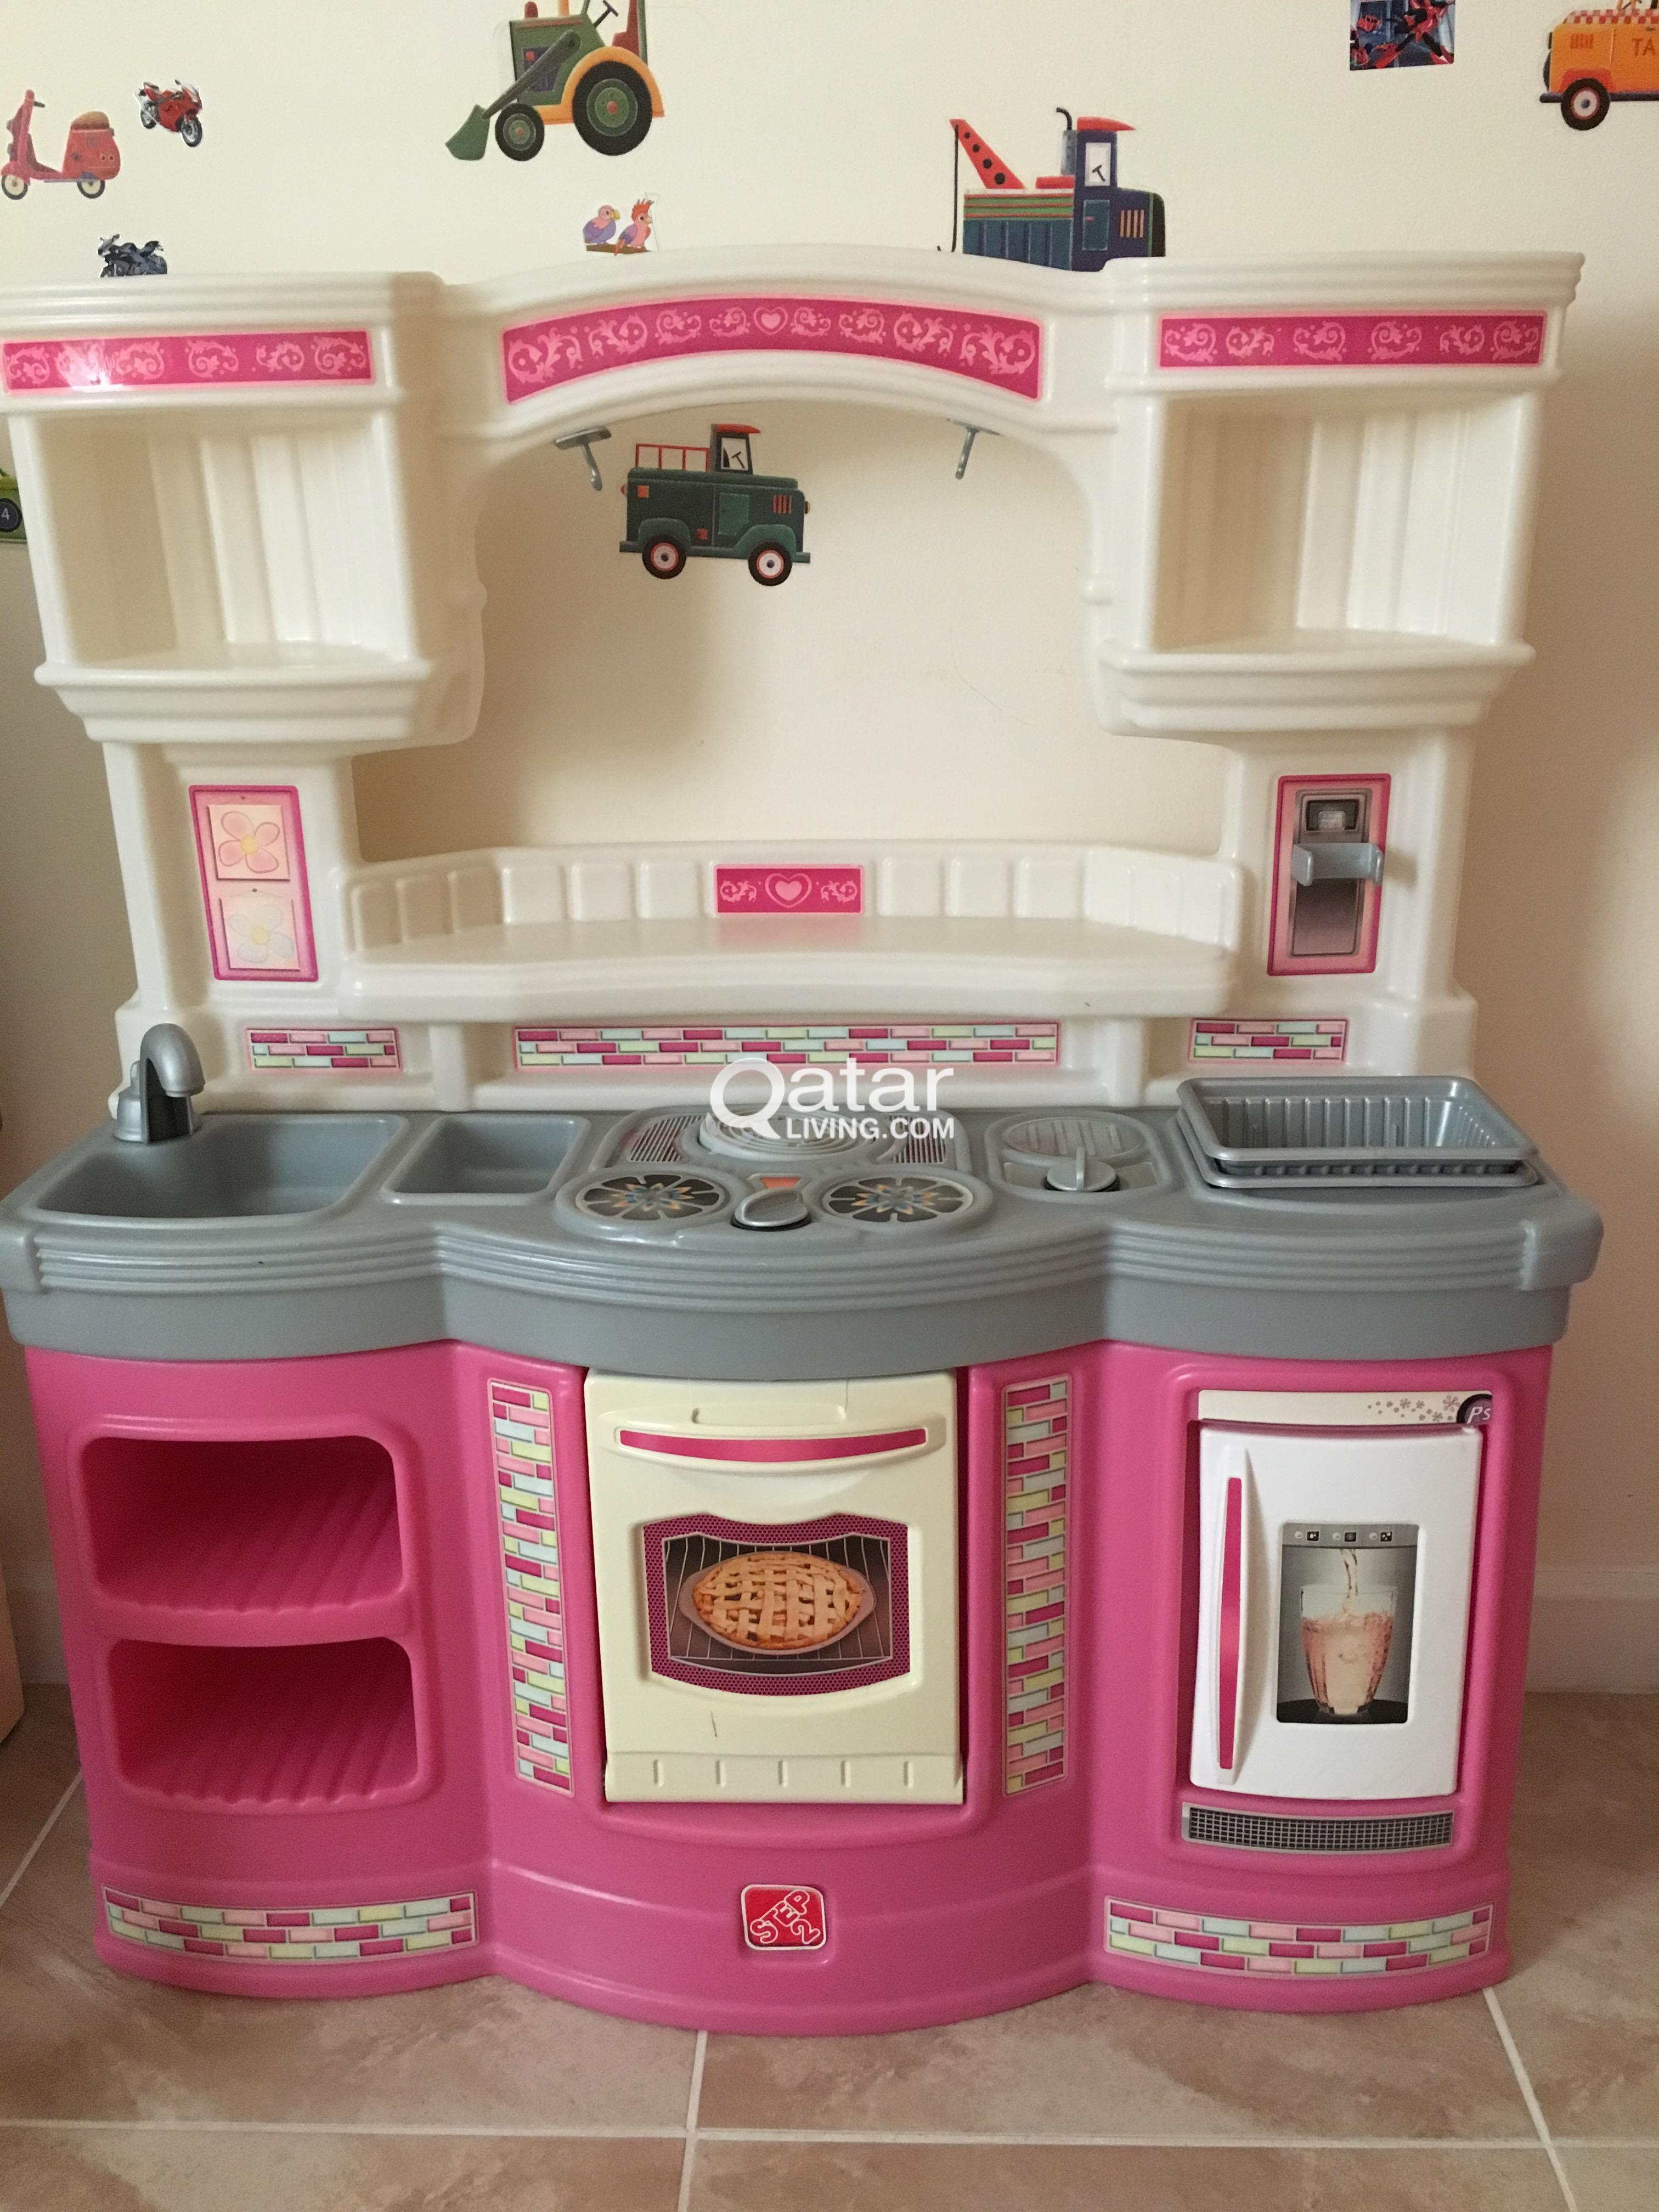 Sensational Step 2 Rise And Shine Kitchen From Toys Are Us Qatar Living Download Free Architecture Designs Jebrpmadebymaigaardcom